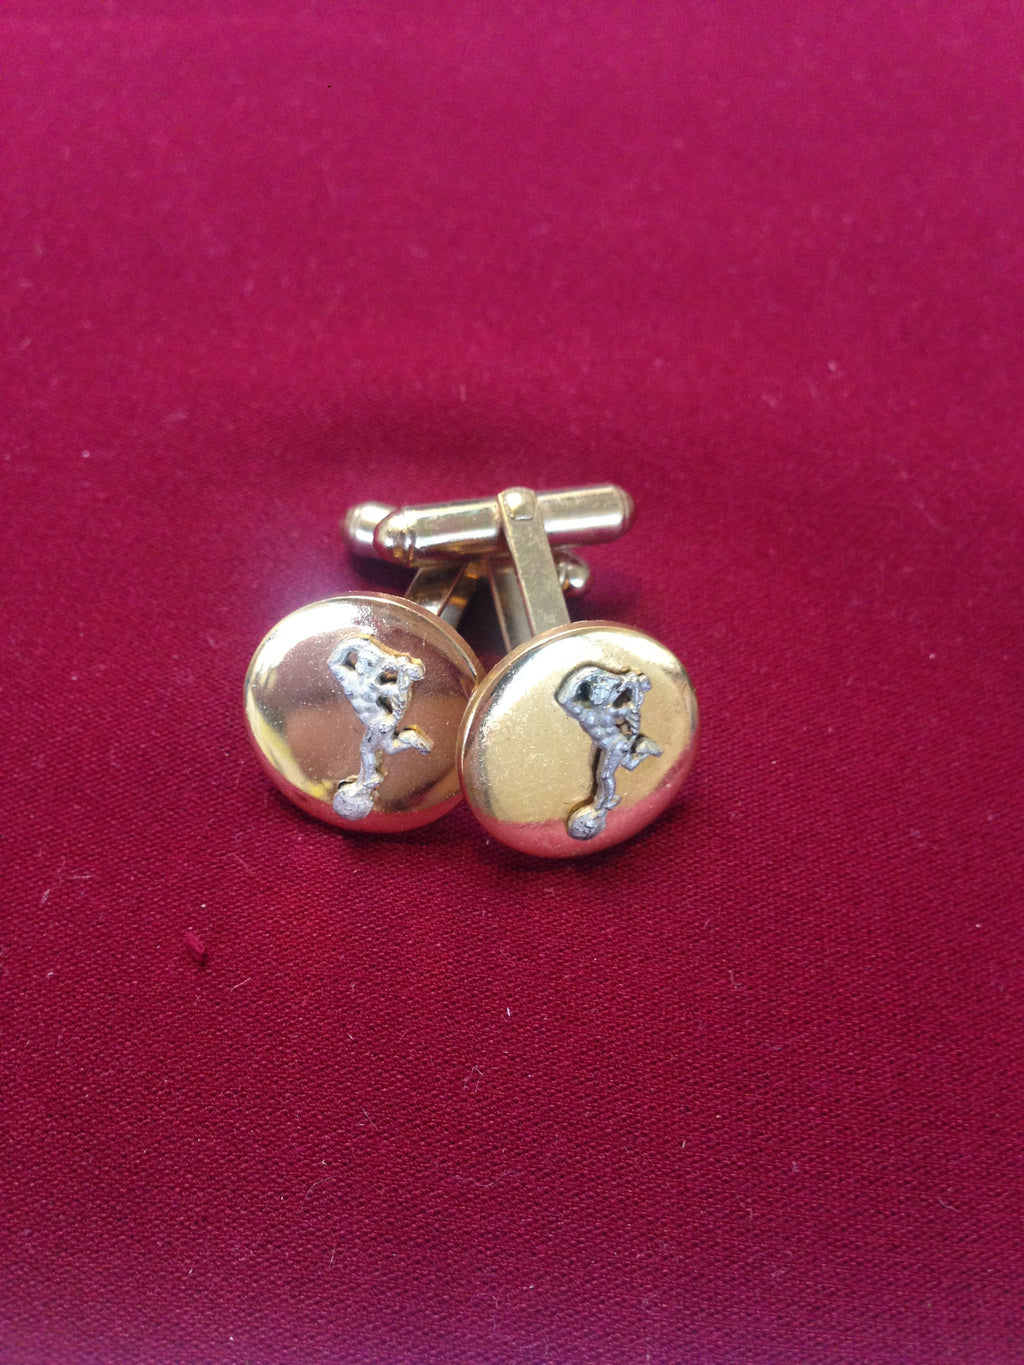 Royal Corps of Signals Cufflinks